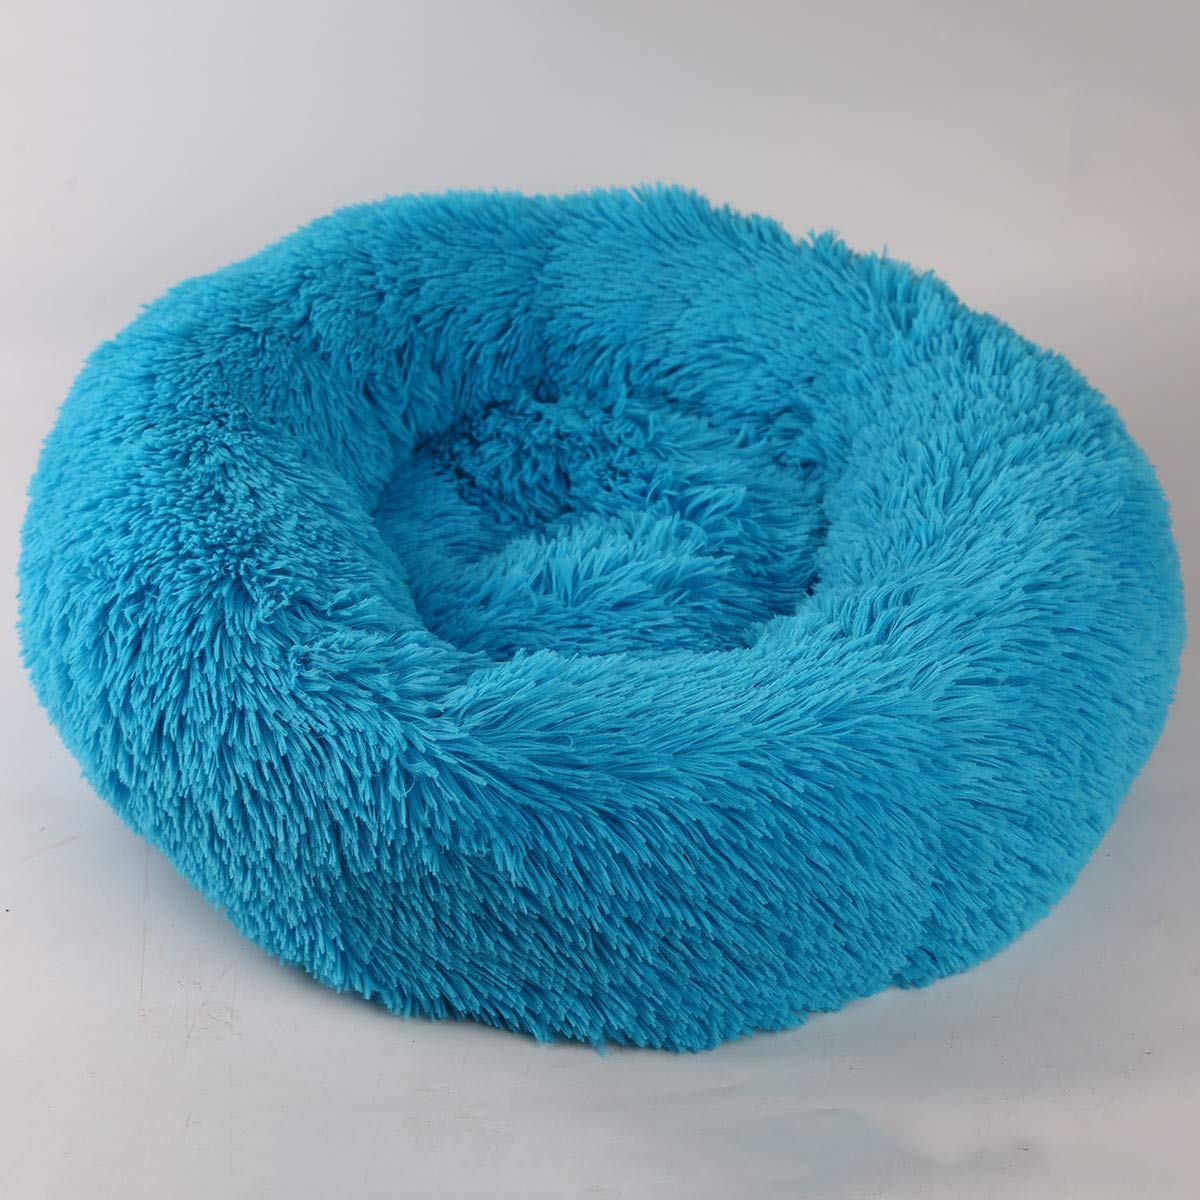 bluee Small bluee Small Plush Pet Nest, Teddy Cat Small Pet Dog Bed, Soft Cozy Warm Dog Cushion Warm Plush Non-Sticky Hair, Indoor Cat Litter and Kennel,bluee,S